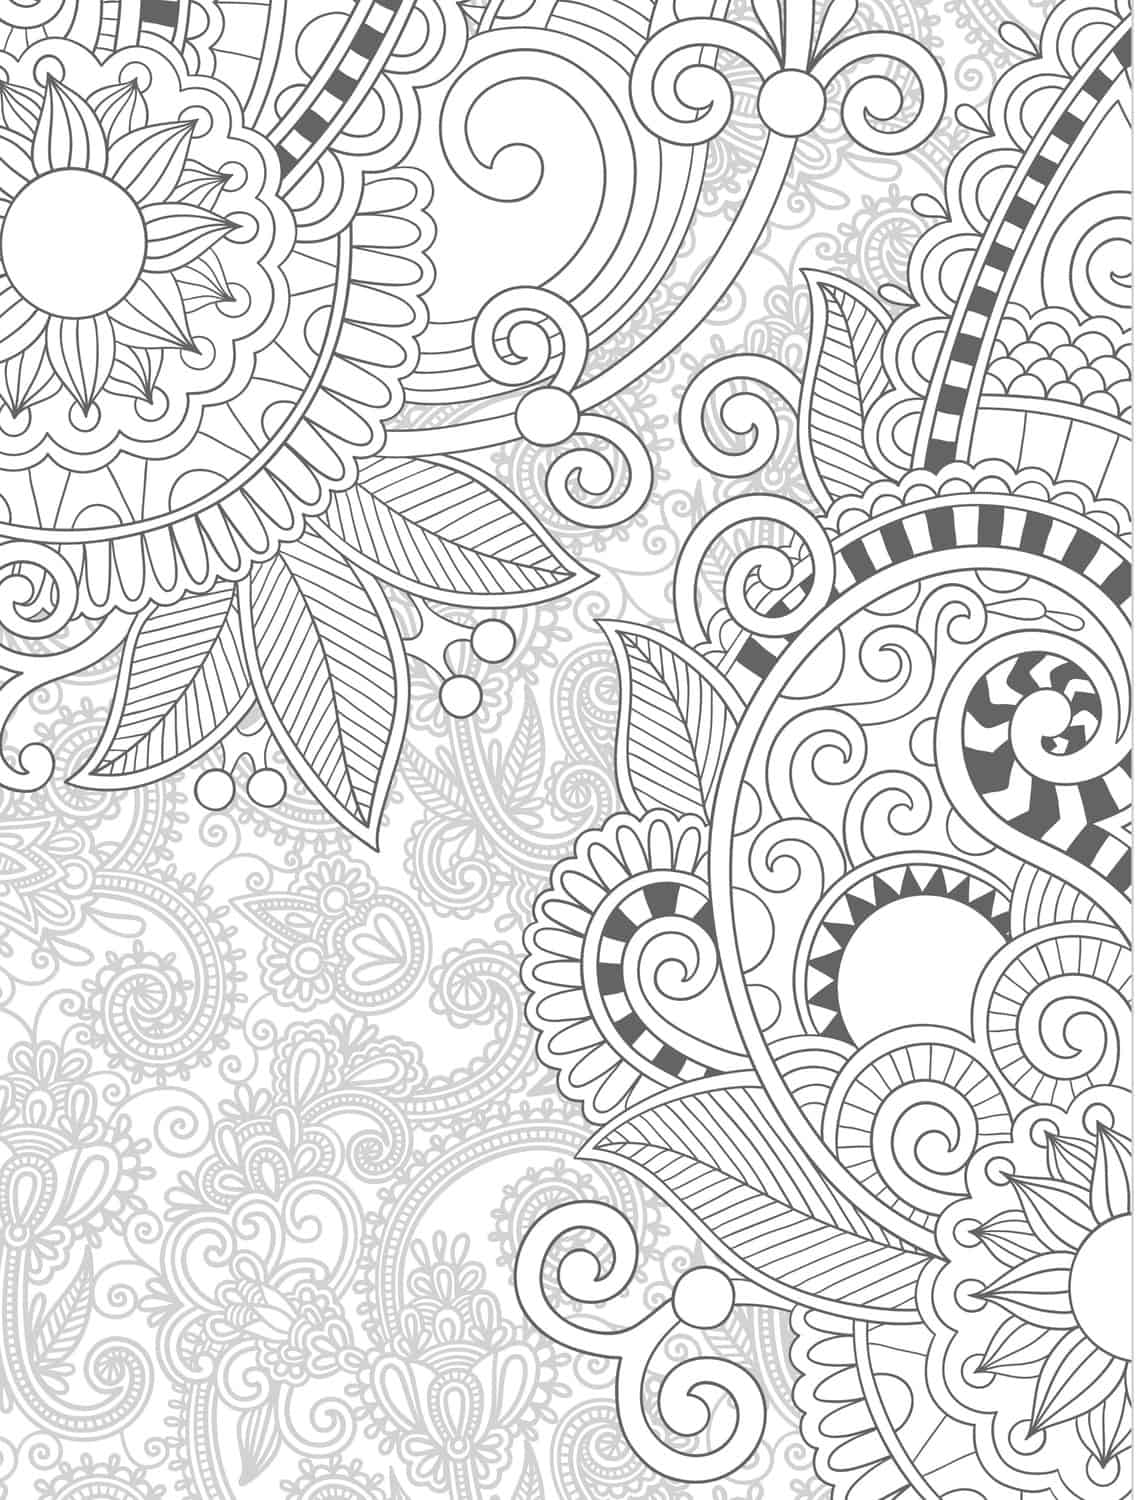 24 more free printable coloring pages page 11 of 25